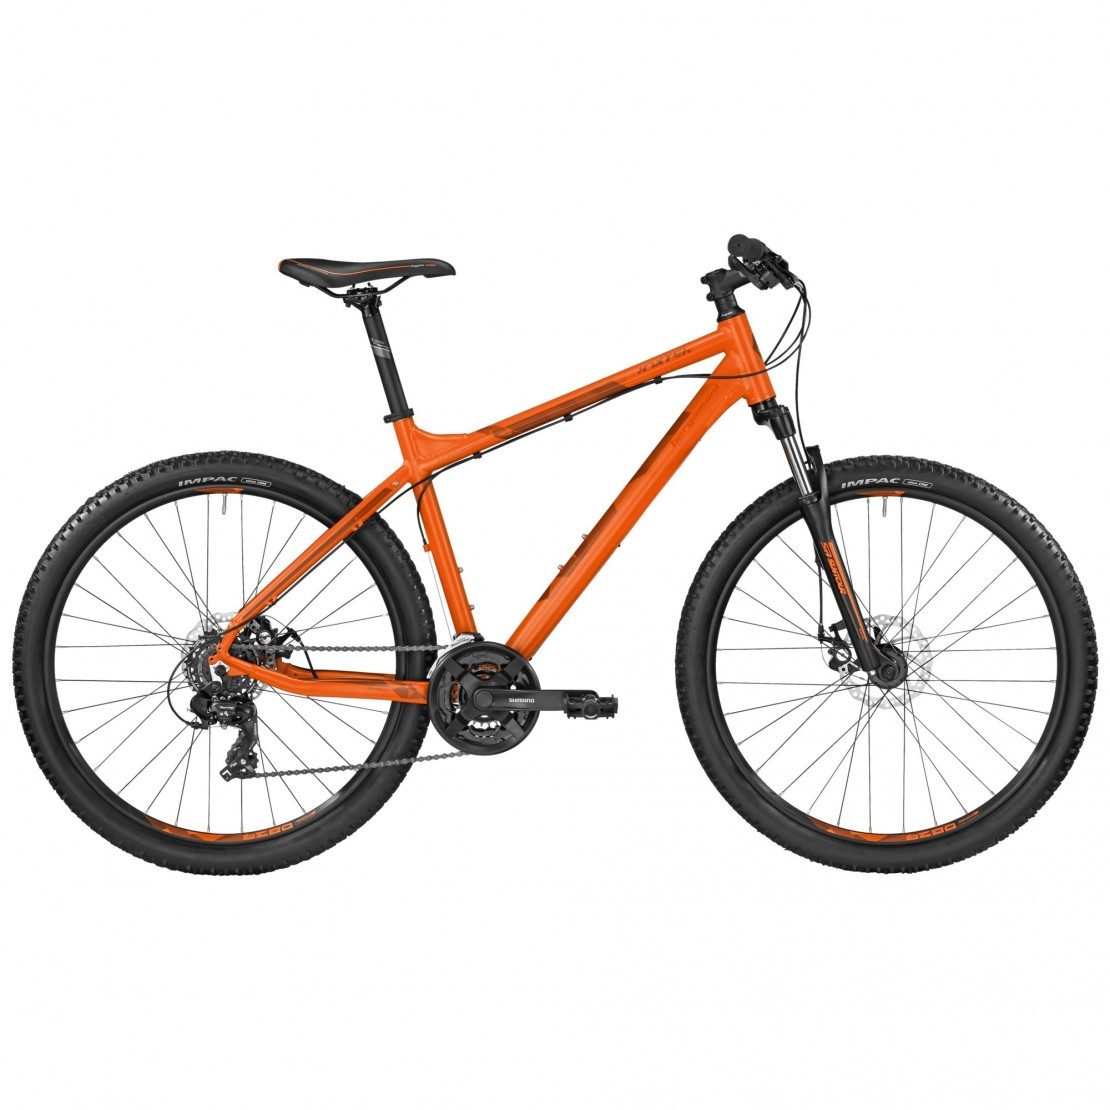 Roxter 2.0 2017 - Hardtail mountain Bikes